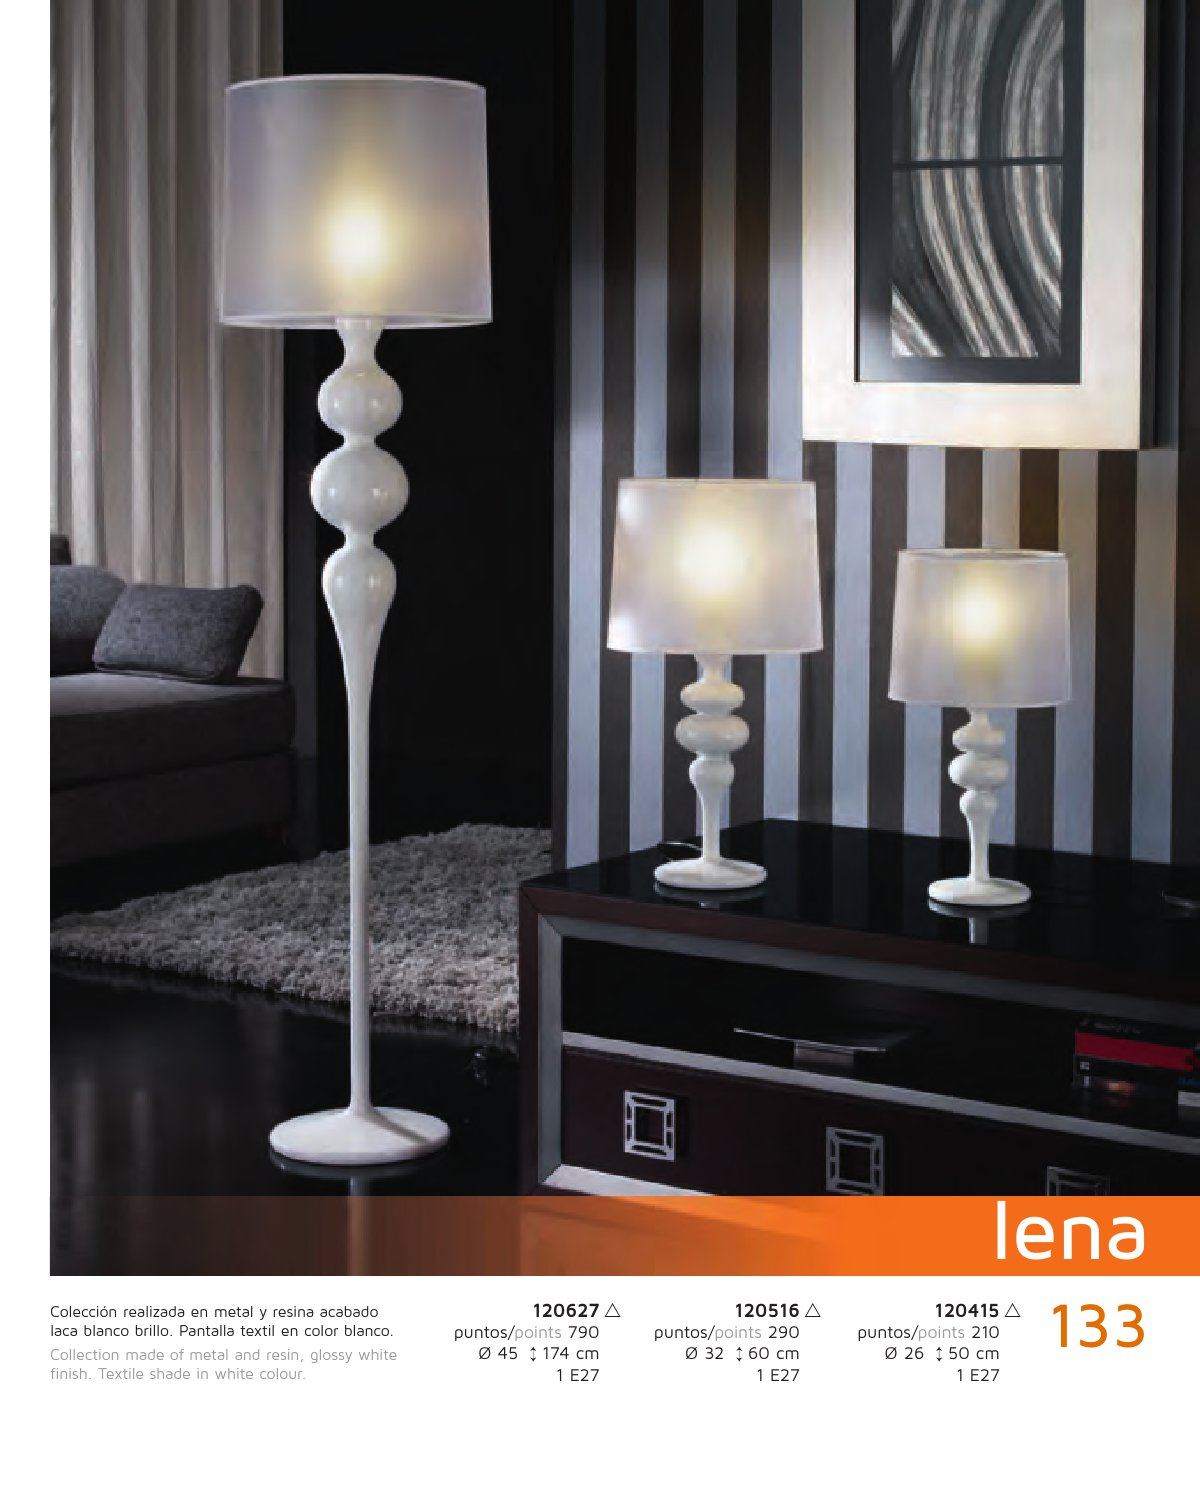 schuller lena table lamp large 1l white 120516